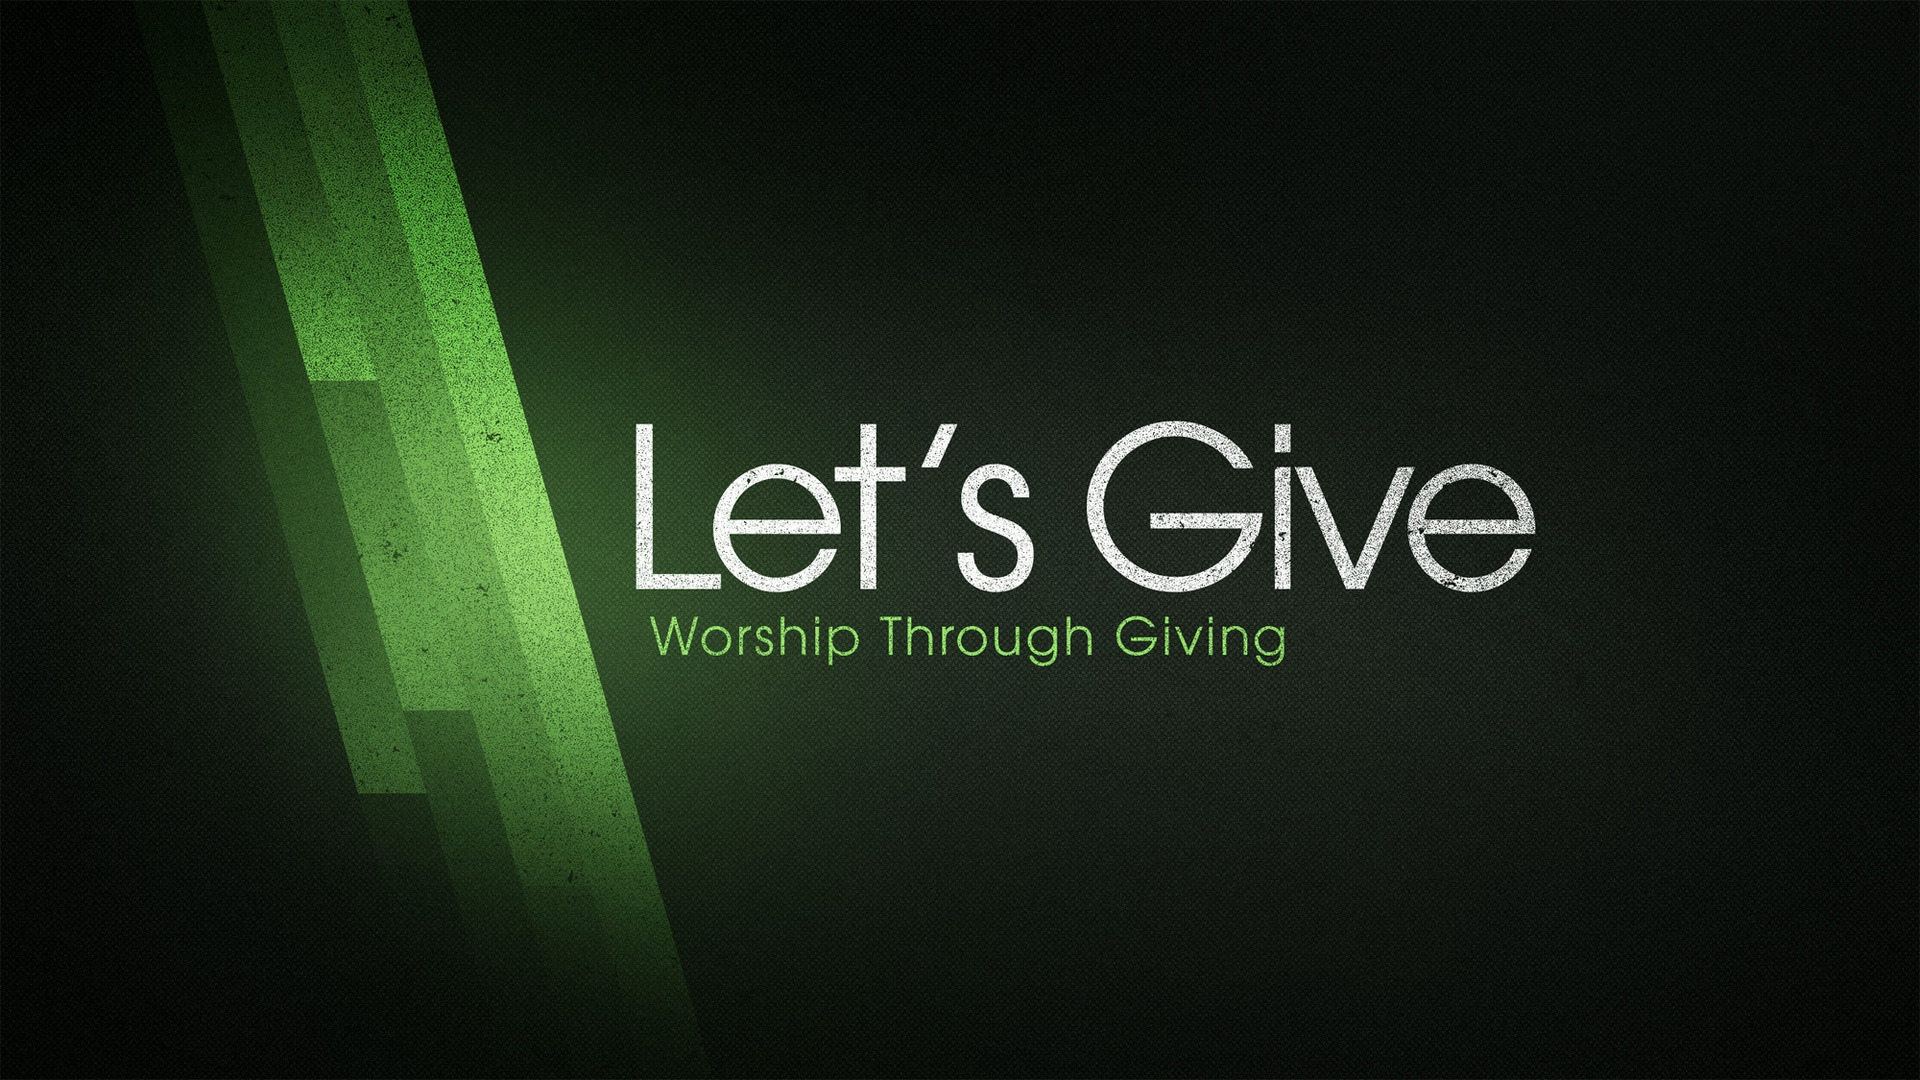 Sunday August 18, 2019 Let's Give: Worship Through Giving - Pastor Anthony Cox